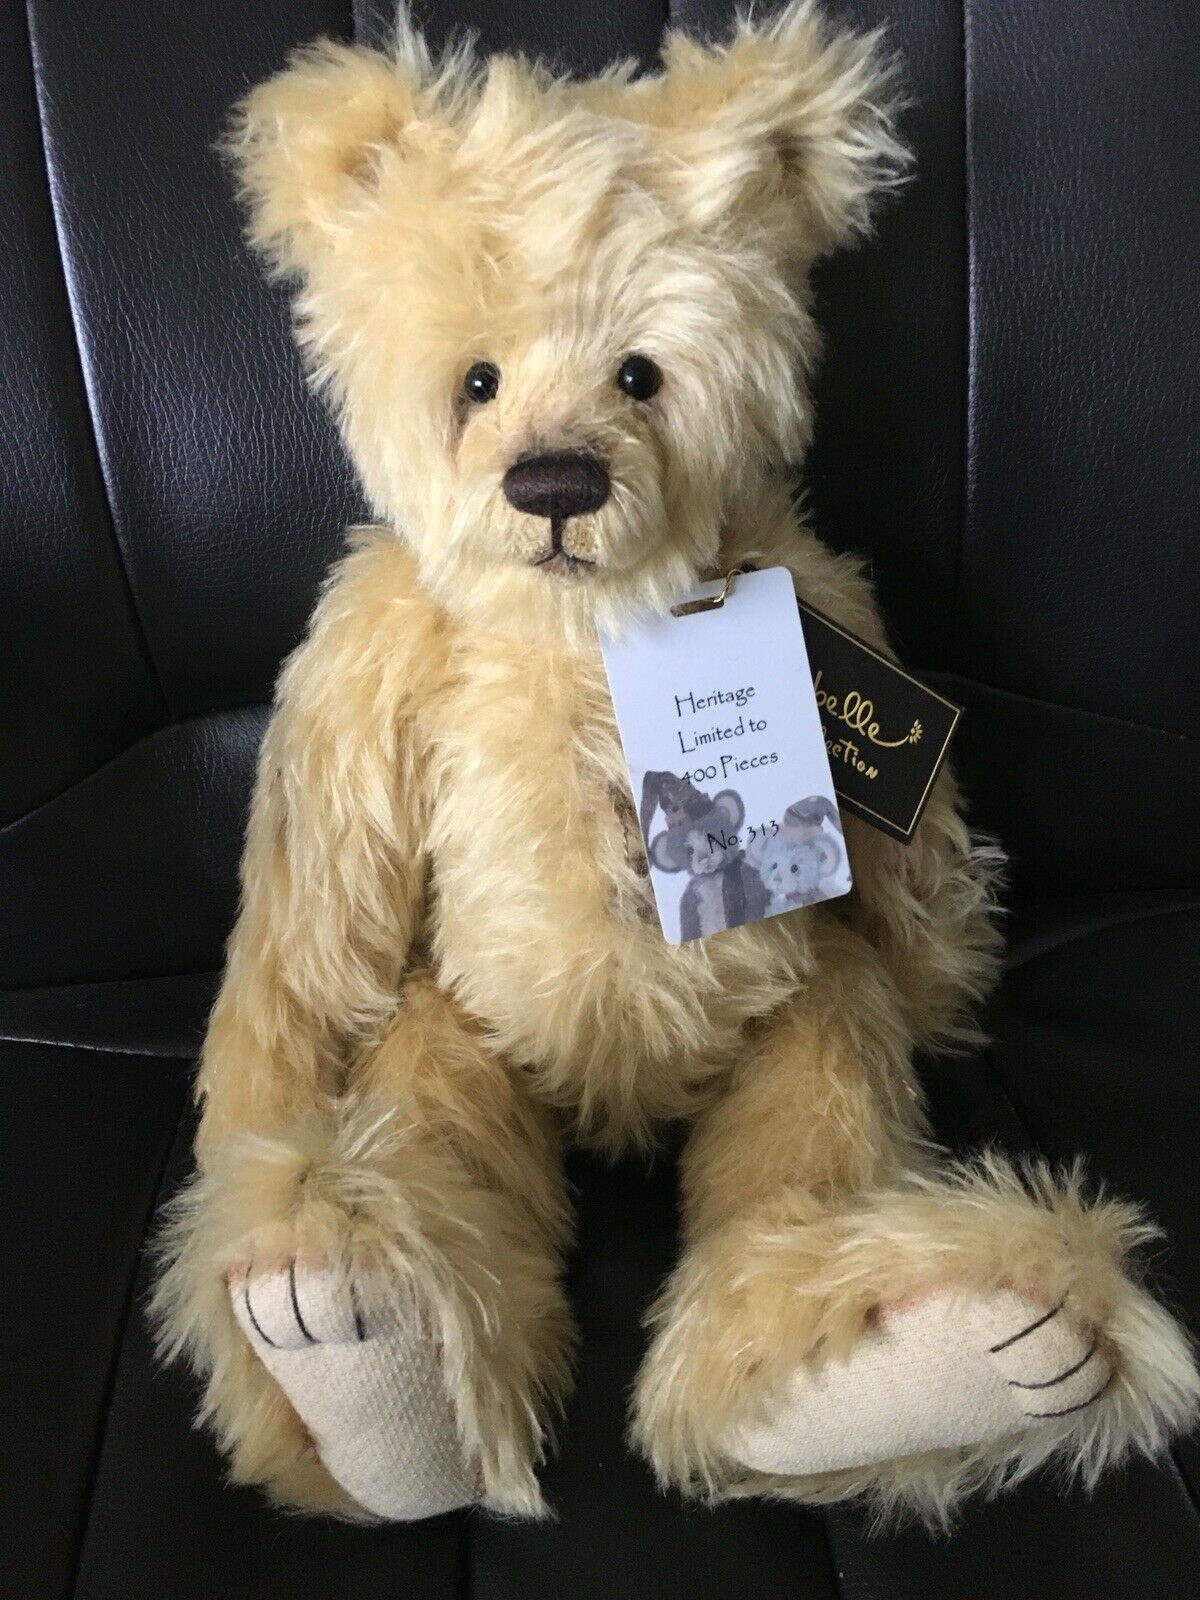 Charlie Bears Heritage L E 343 Of 400